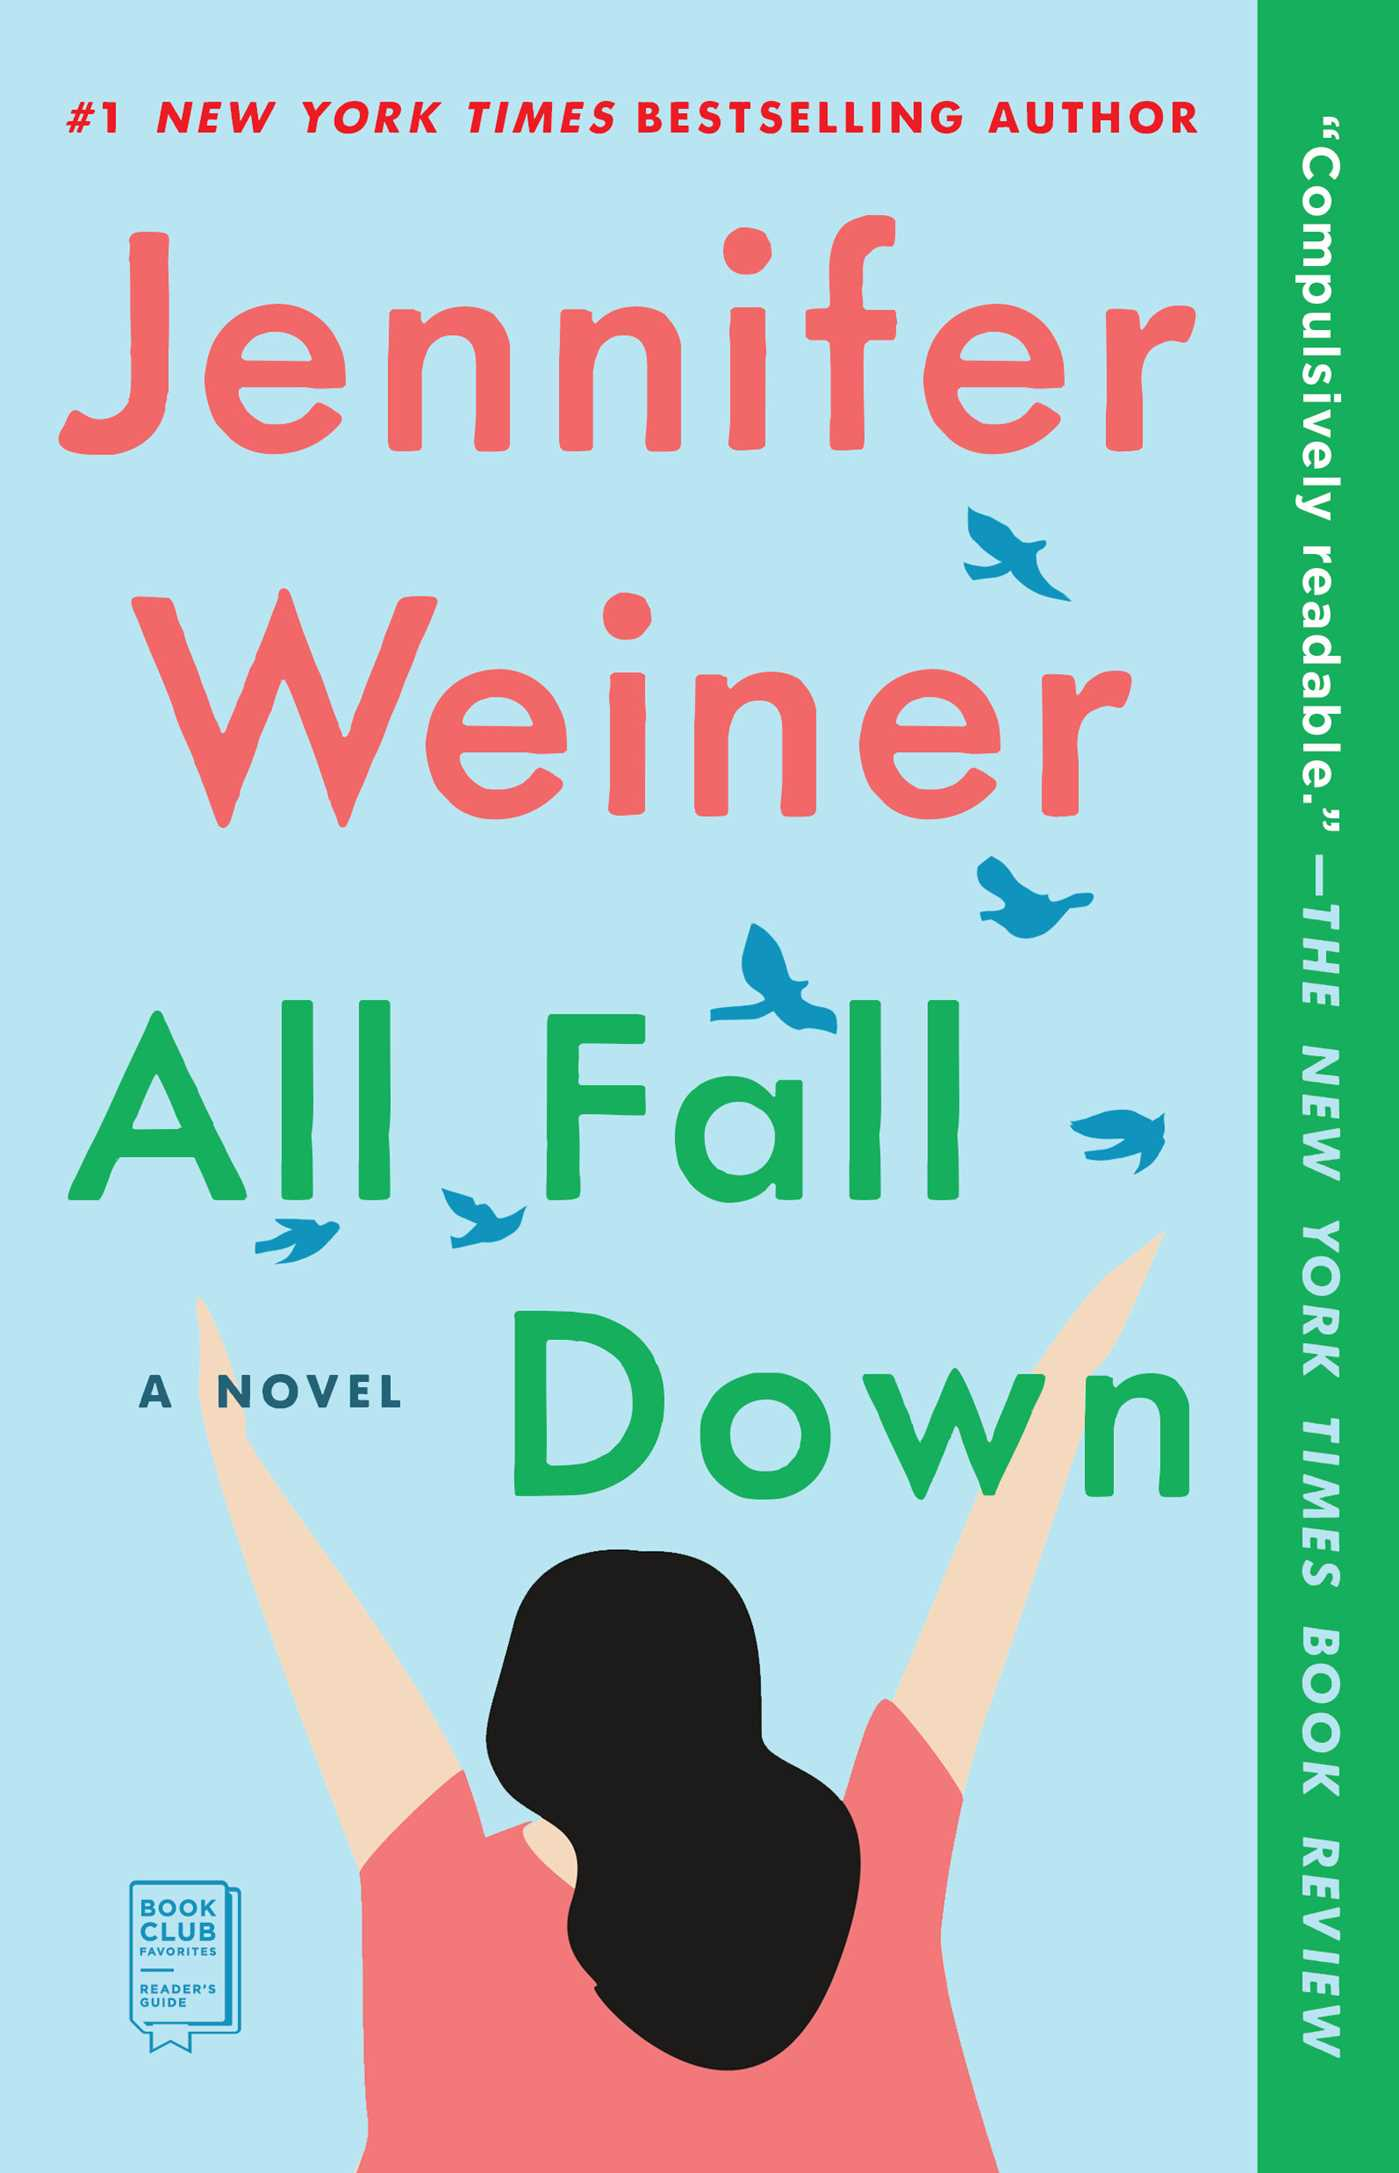 Book Cover Image (jpg): All Fall Down